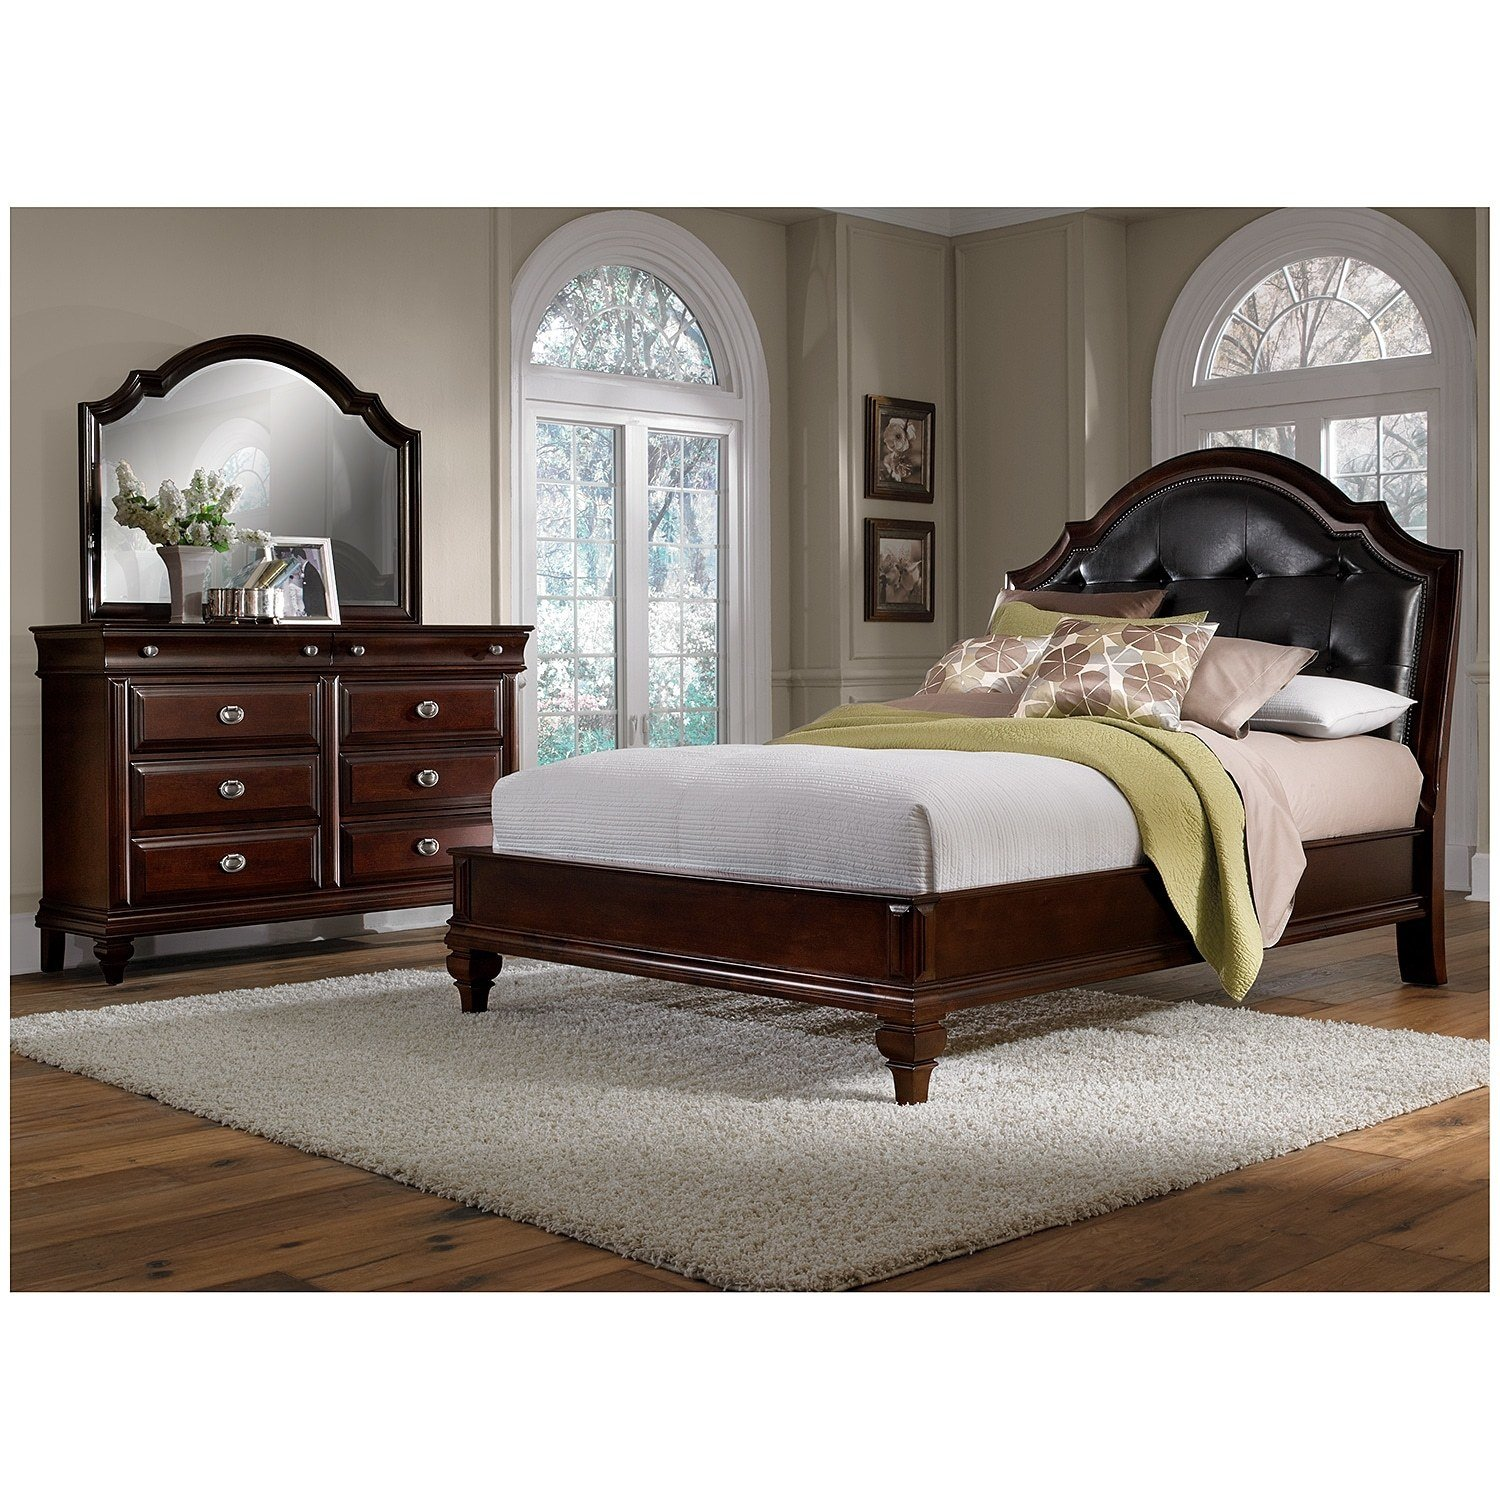 Best Manhattan 5 Piece Queen Bedroom Set Cherry American With Pictures